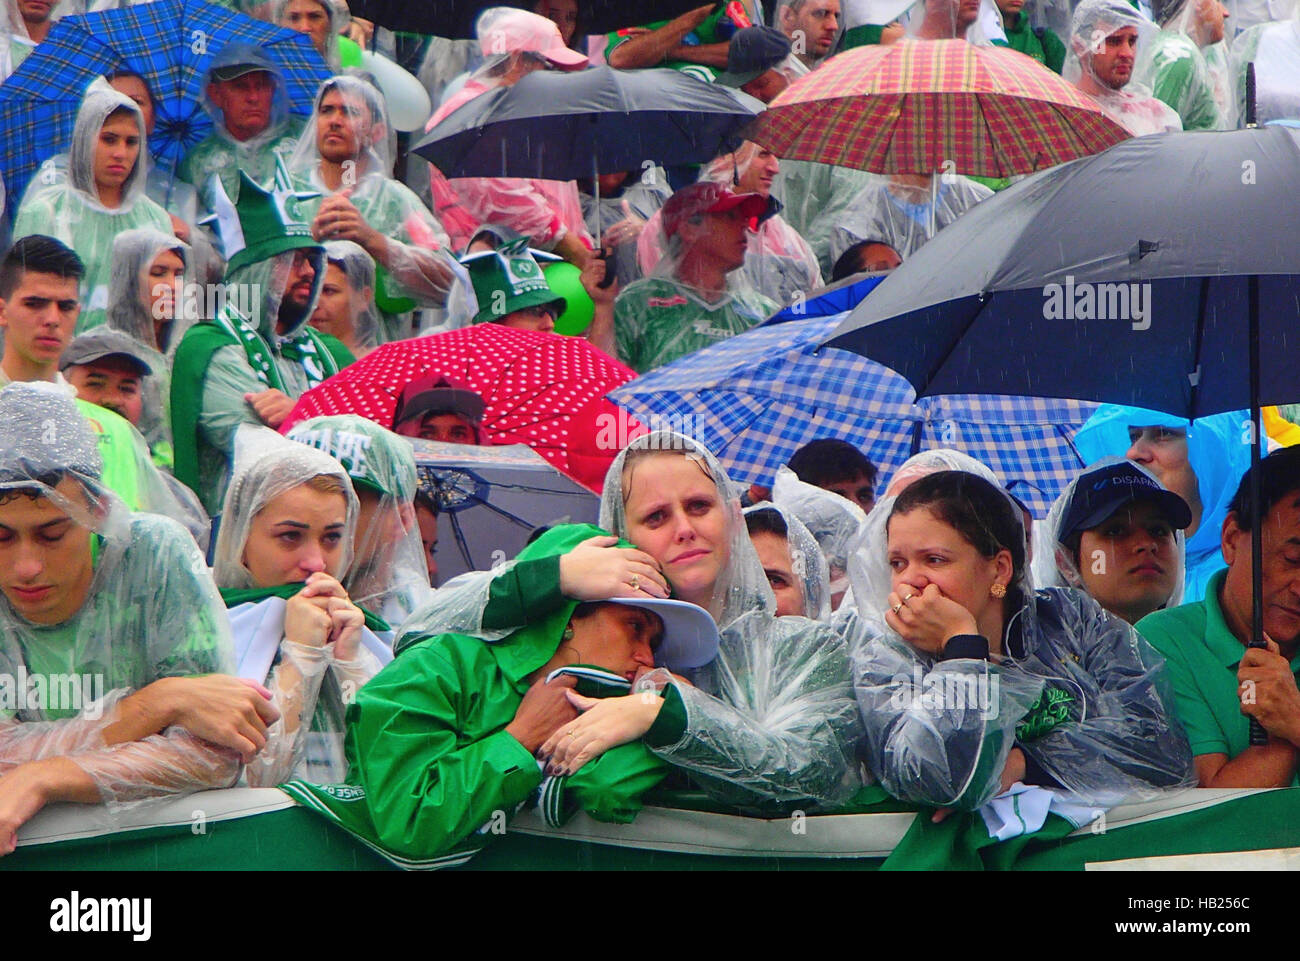 Chapeco, Brazil. 3rd Dec, 2016. Fans of the Brazilian soccer team Chapecoense mourn in the stands during a mourning - Stock Image